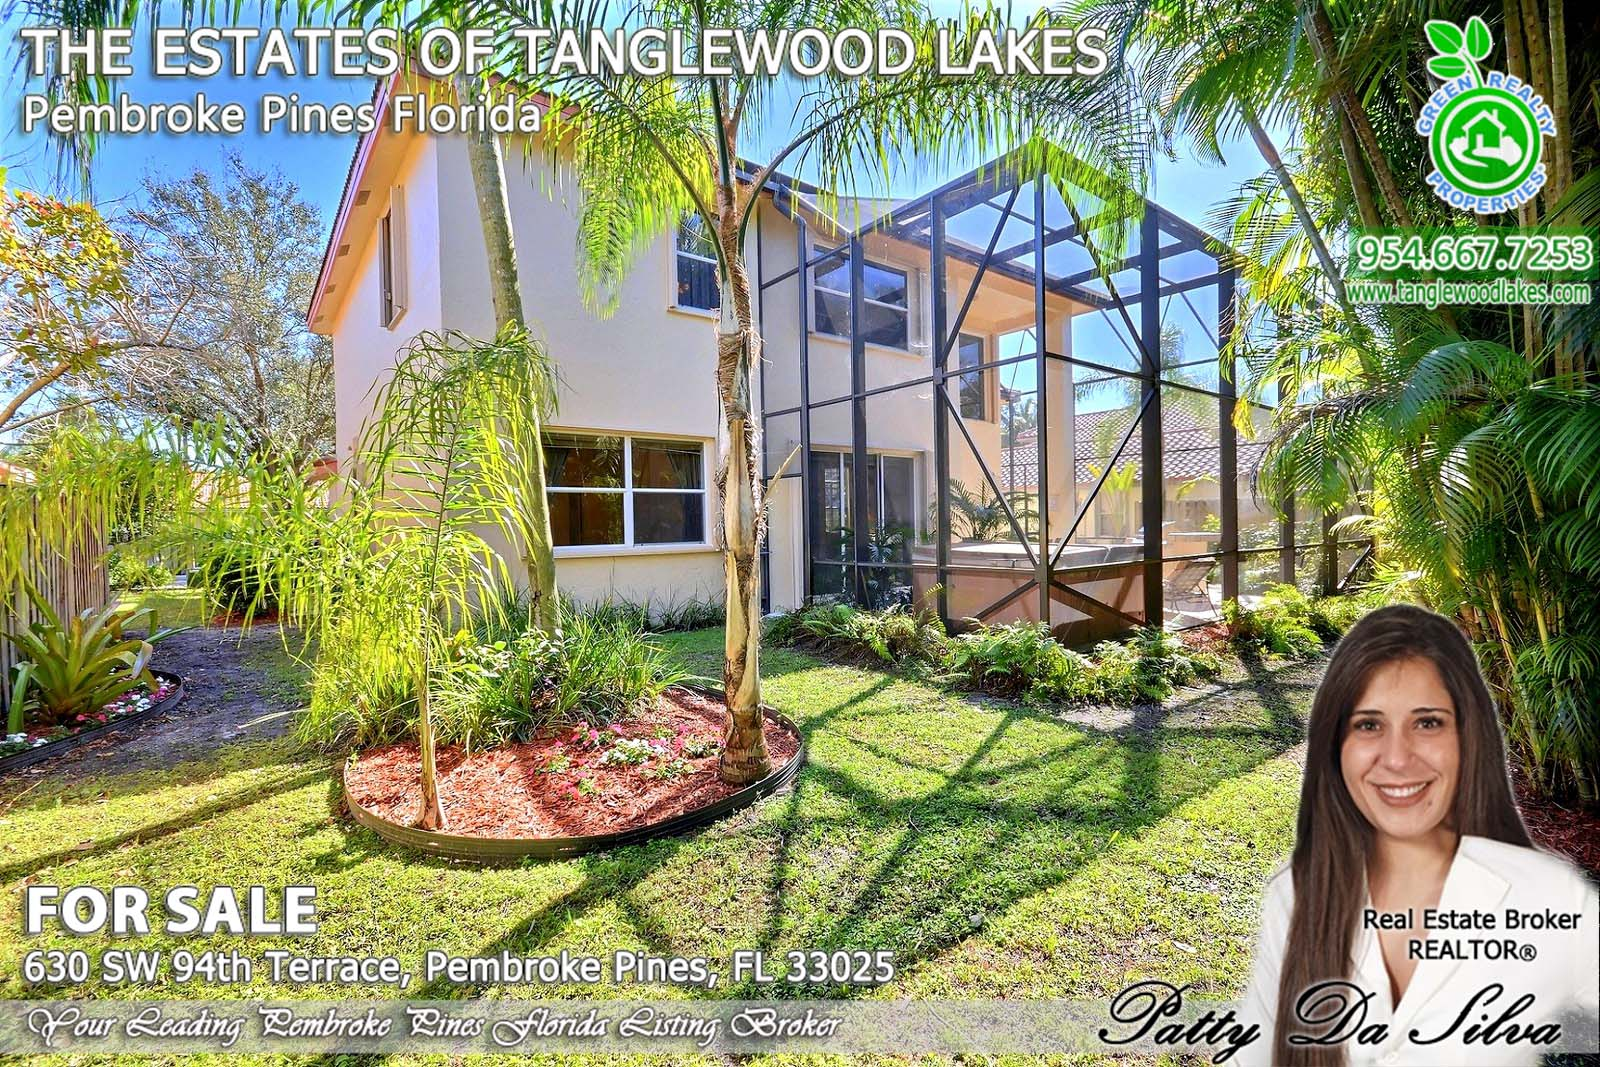 The Estates of Tanglewood Lakes sell your home